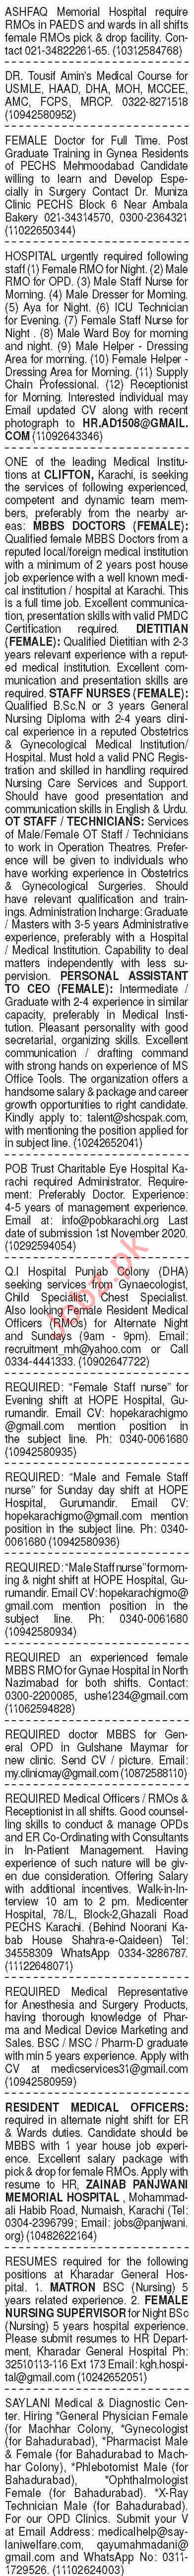 Dawn Sunday Classified Ads 25 Oct 2020 for Medical Staff